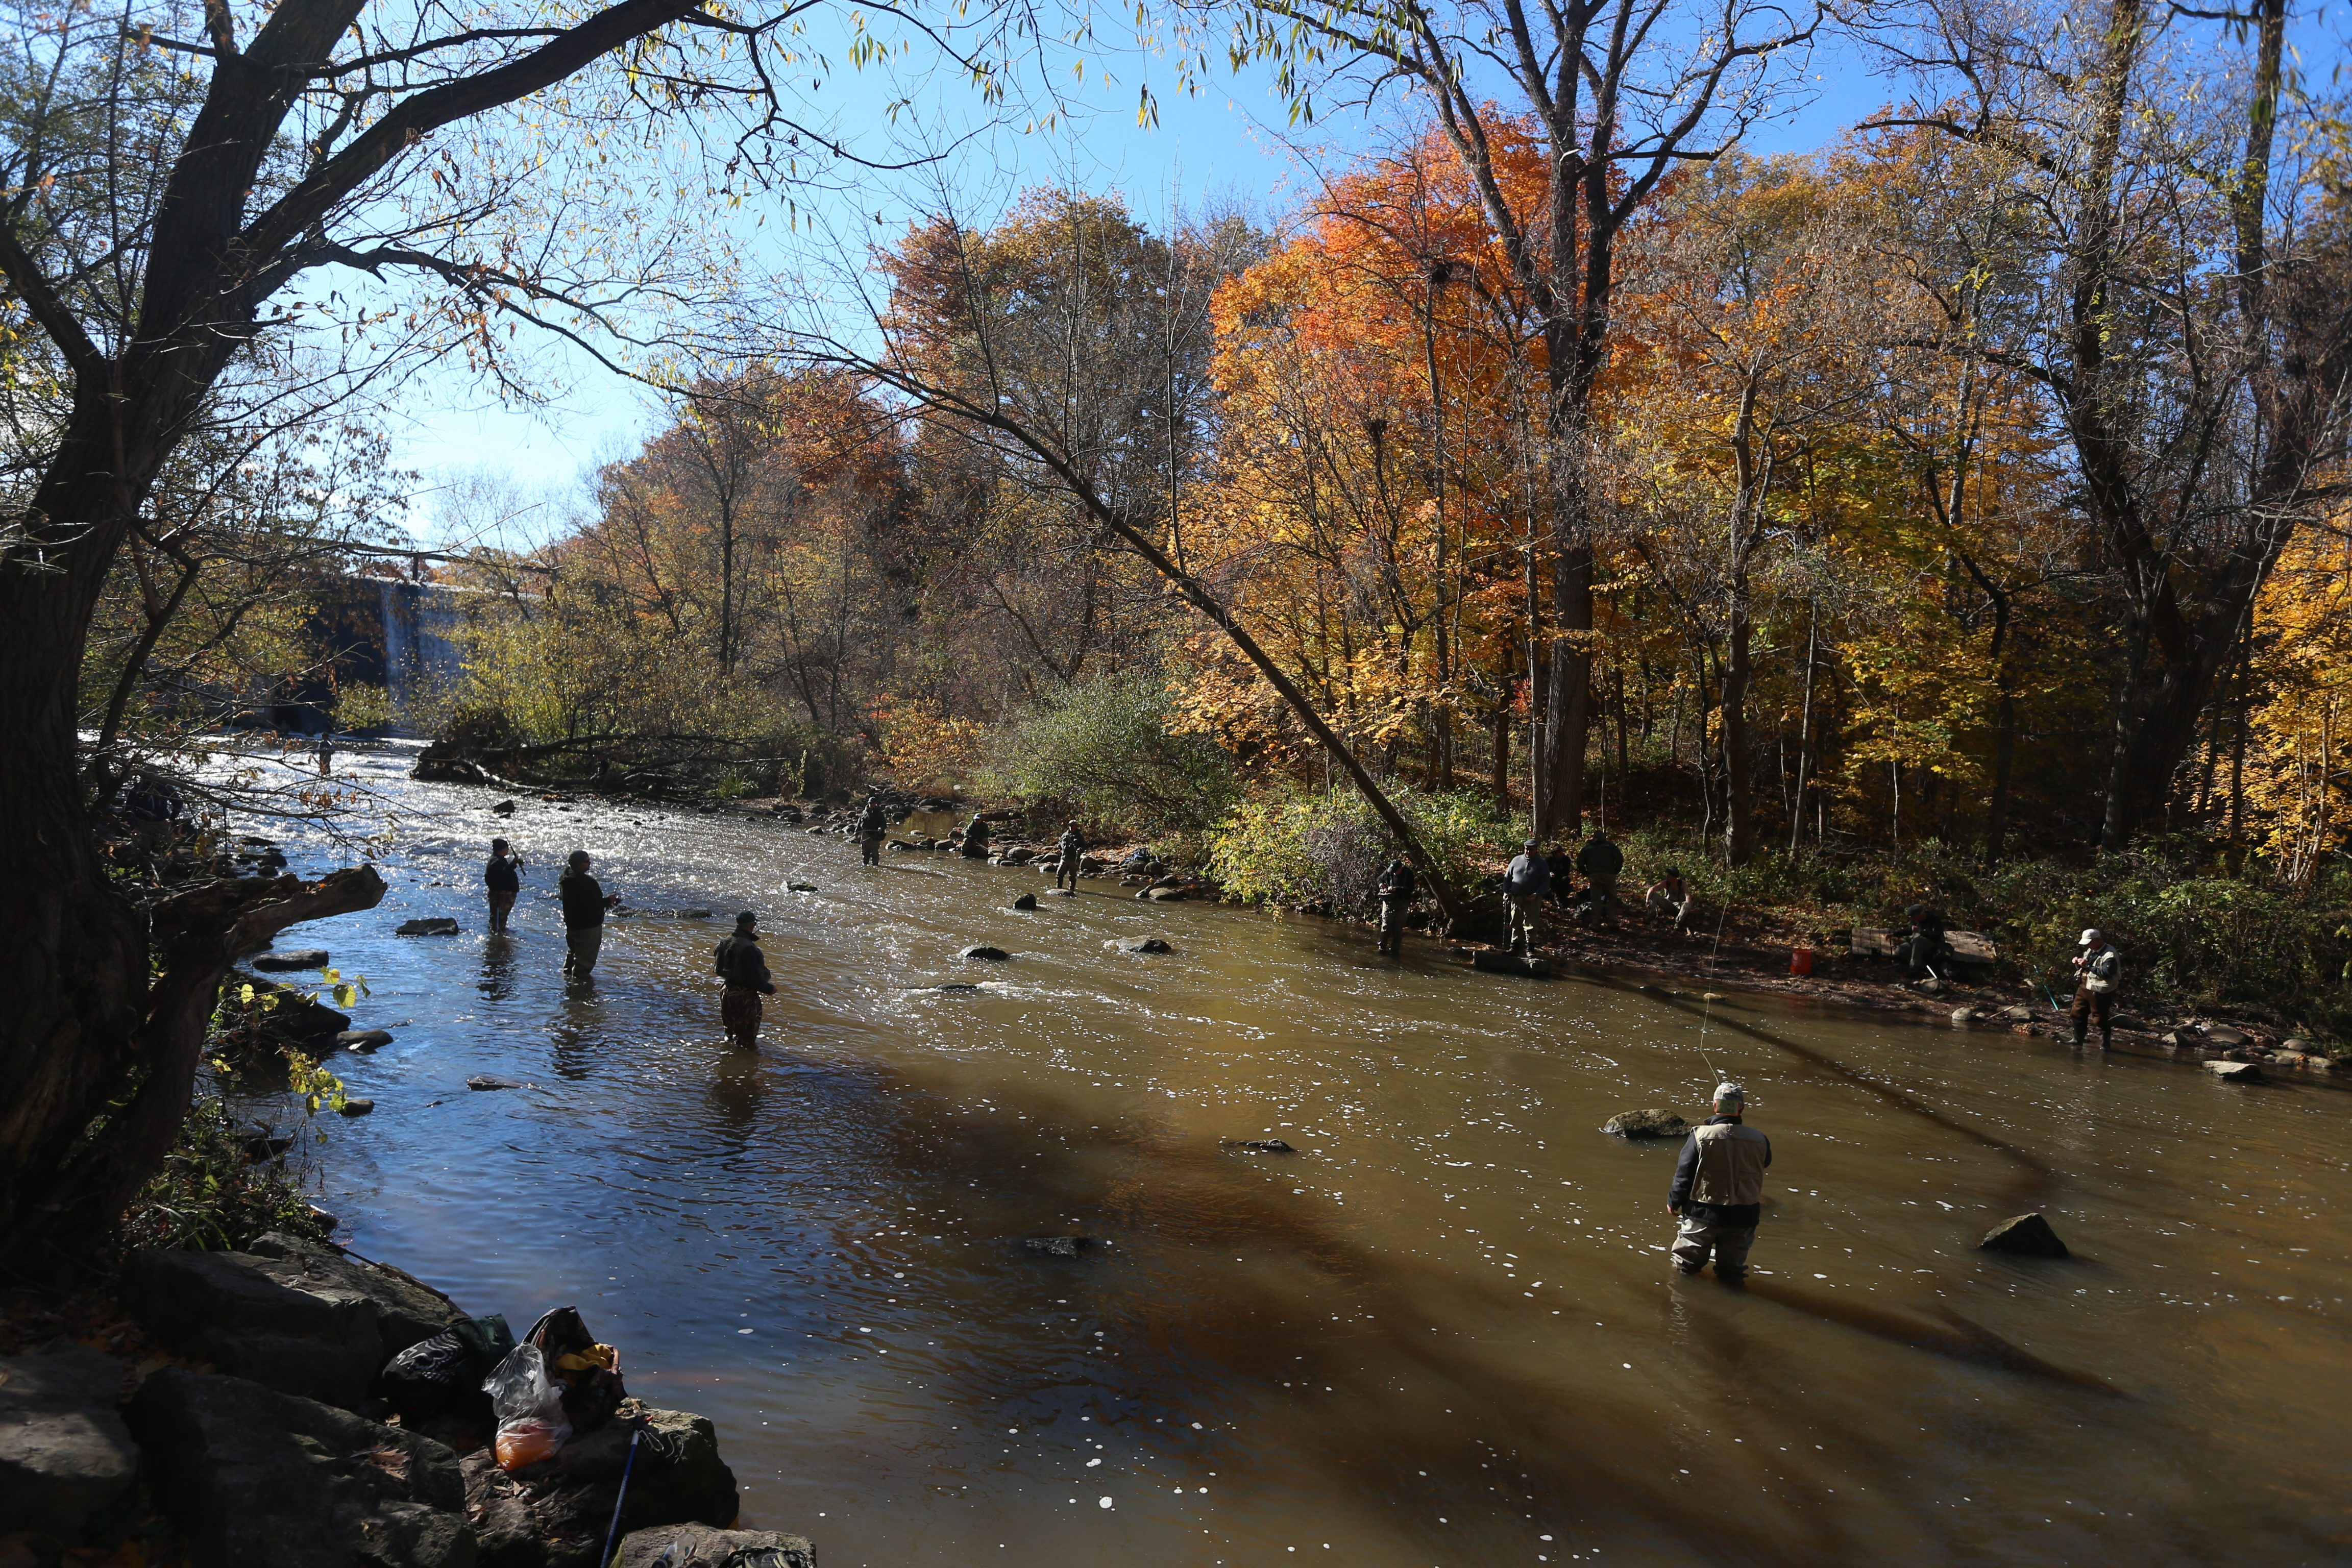 Fisherman on the banks of Burt Dam Fishermens Park on 18 Mile Creek in Burt, N.Y., on Monday, Nov. 2, 2015, fishing for brown trout and salmon. (John Hickey/Buffalo News)